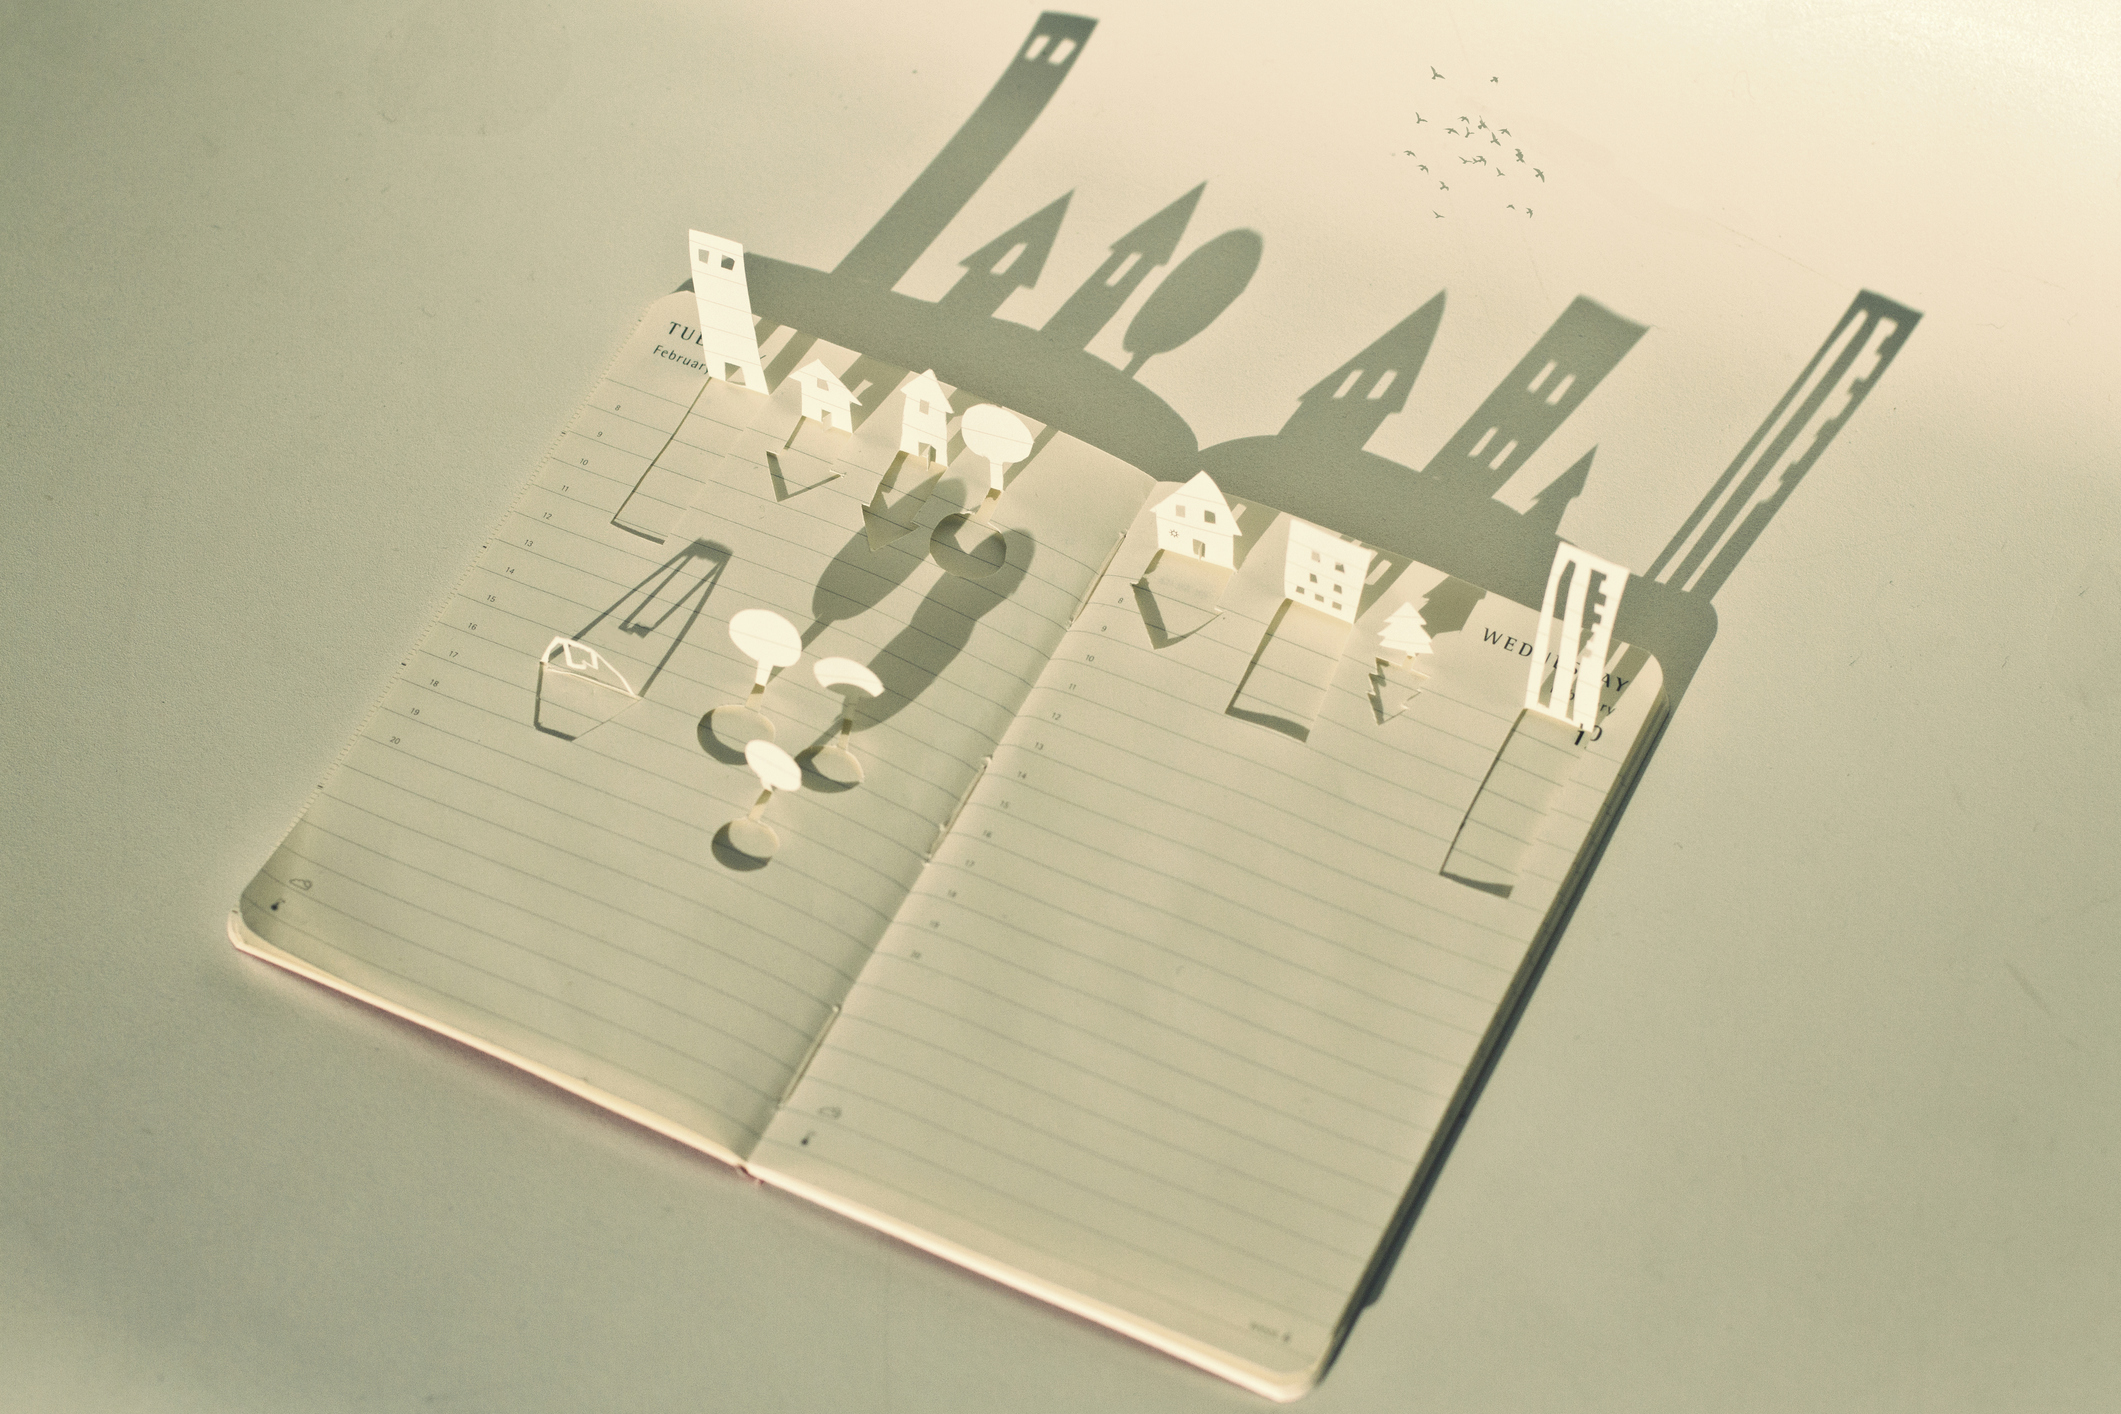 Small open book filled with delicate hand made paper cuttings depicting city scene which is lit by sunlight casting shadow of city on white background behind.